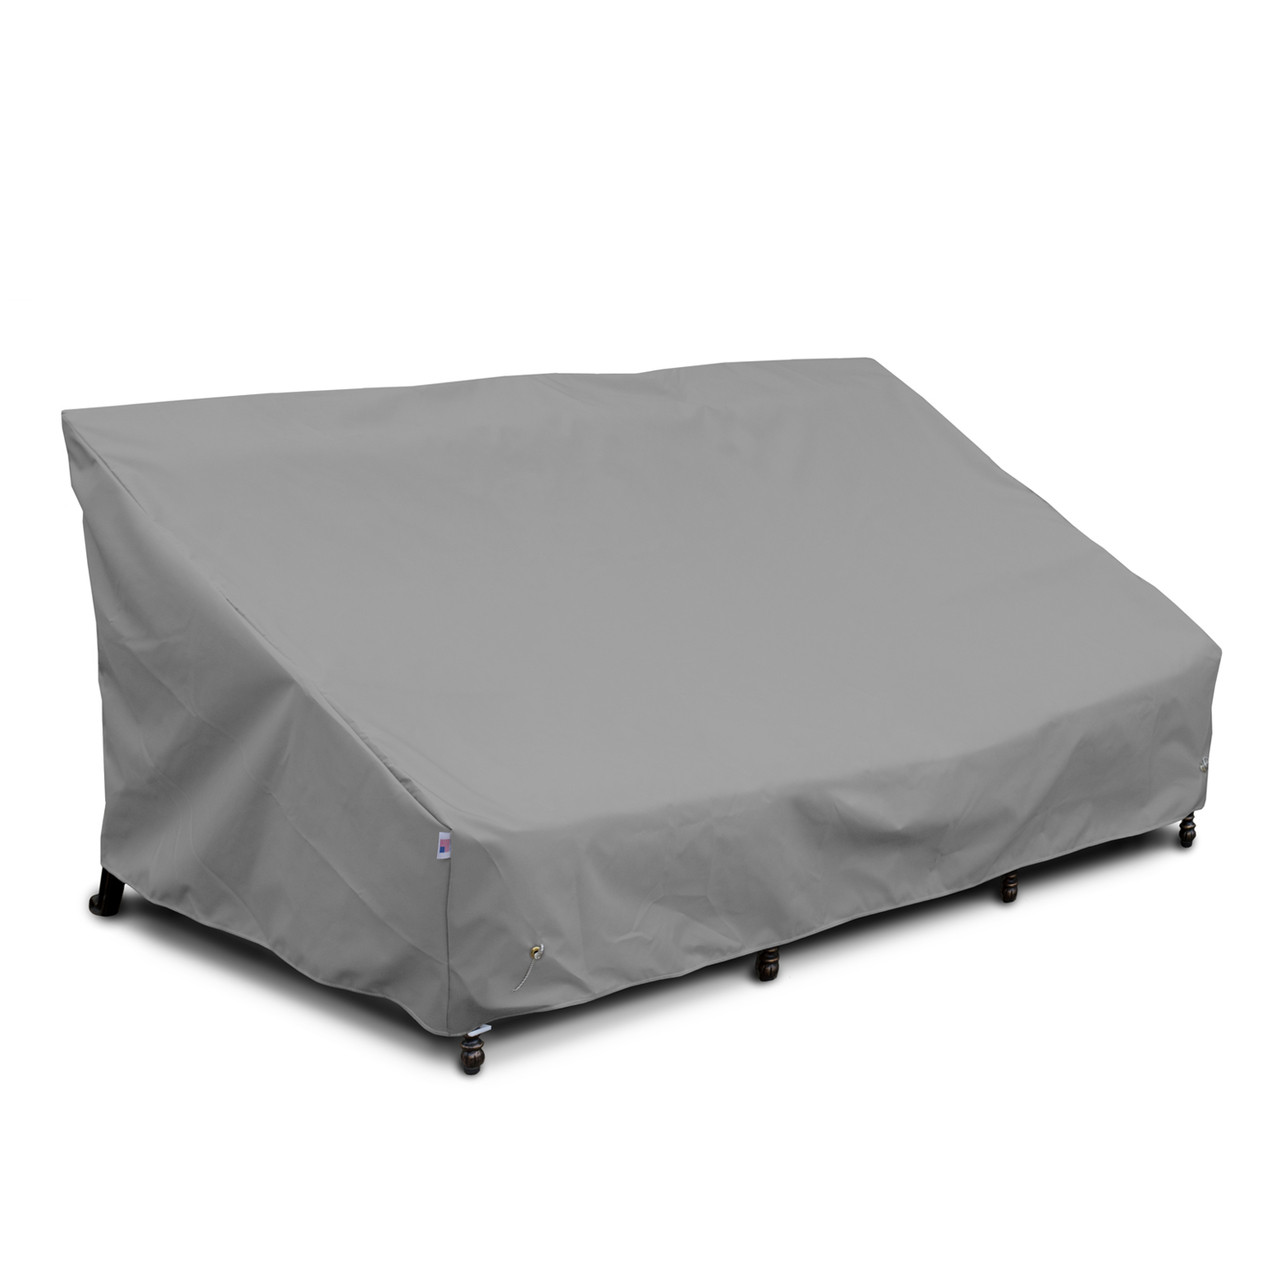 Sofa Cover - Outdoor Furniture Covers